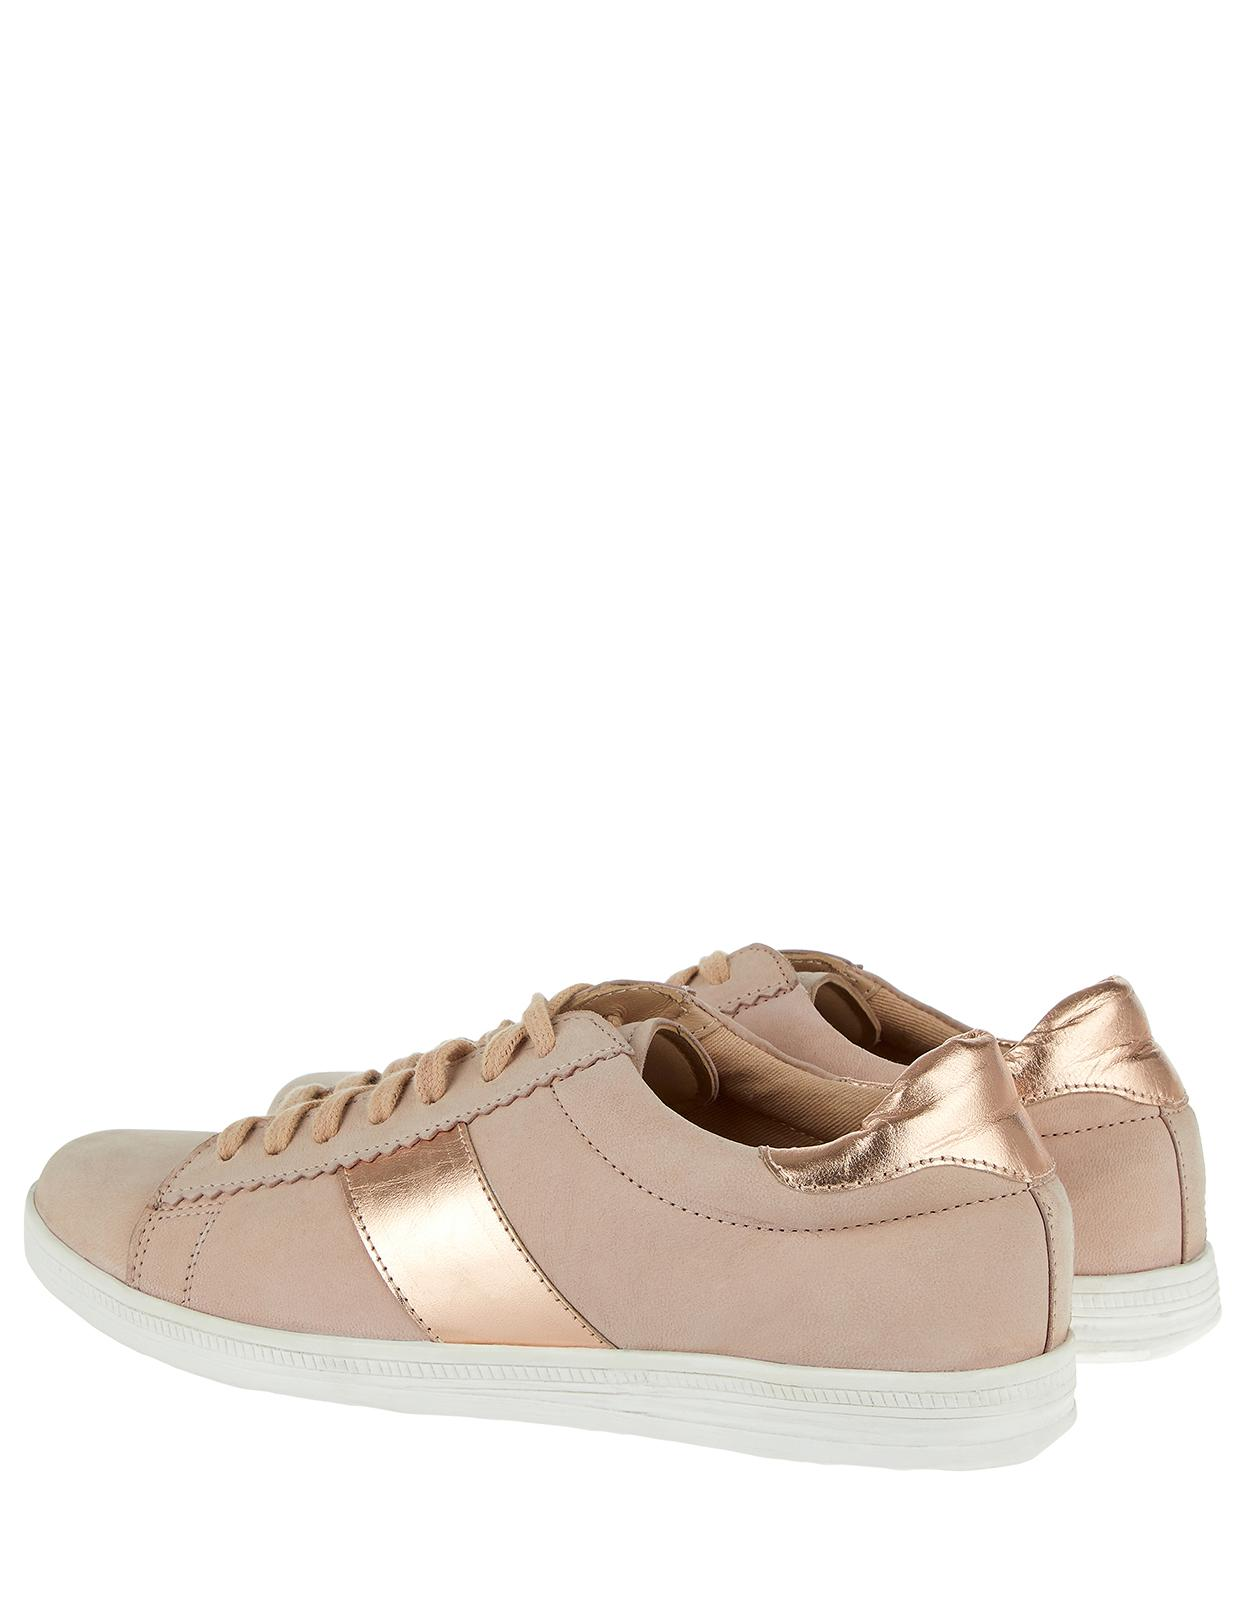 Monsoon Canvas Natalia Nude Lace Up Trainers in Natural